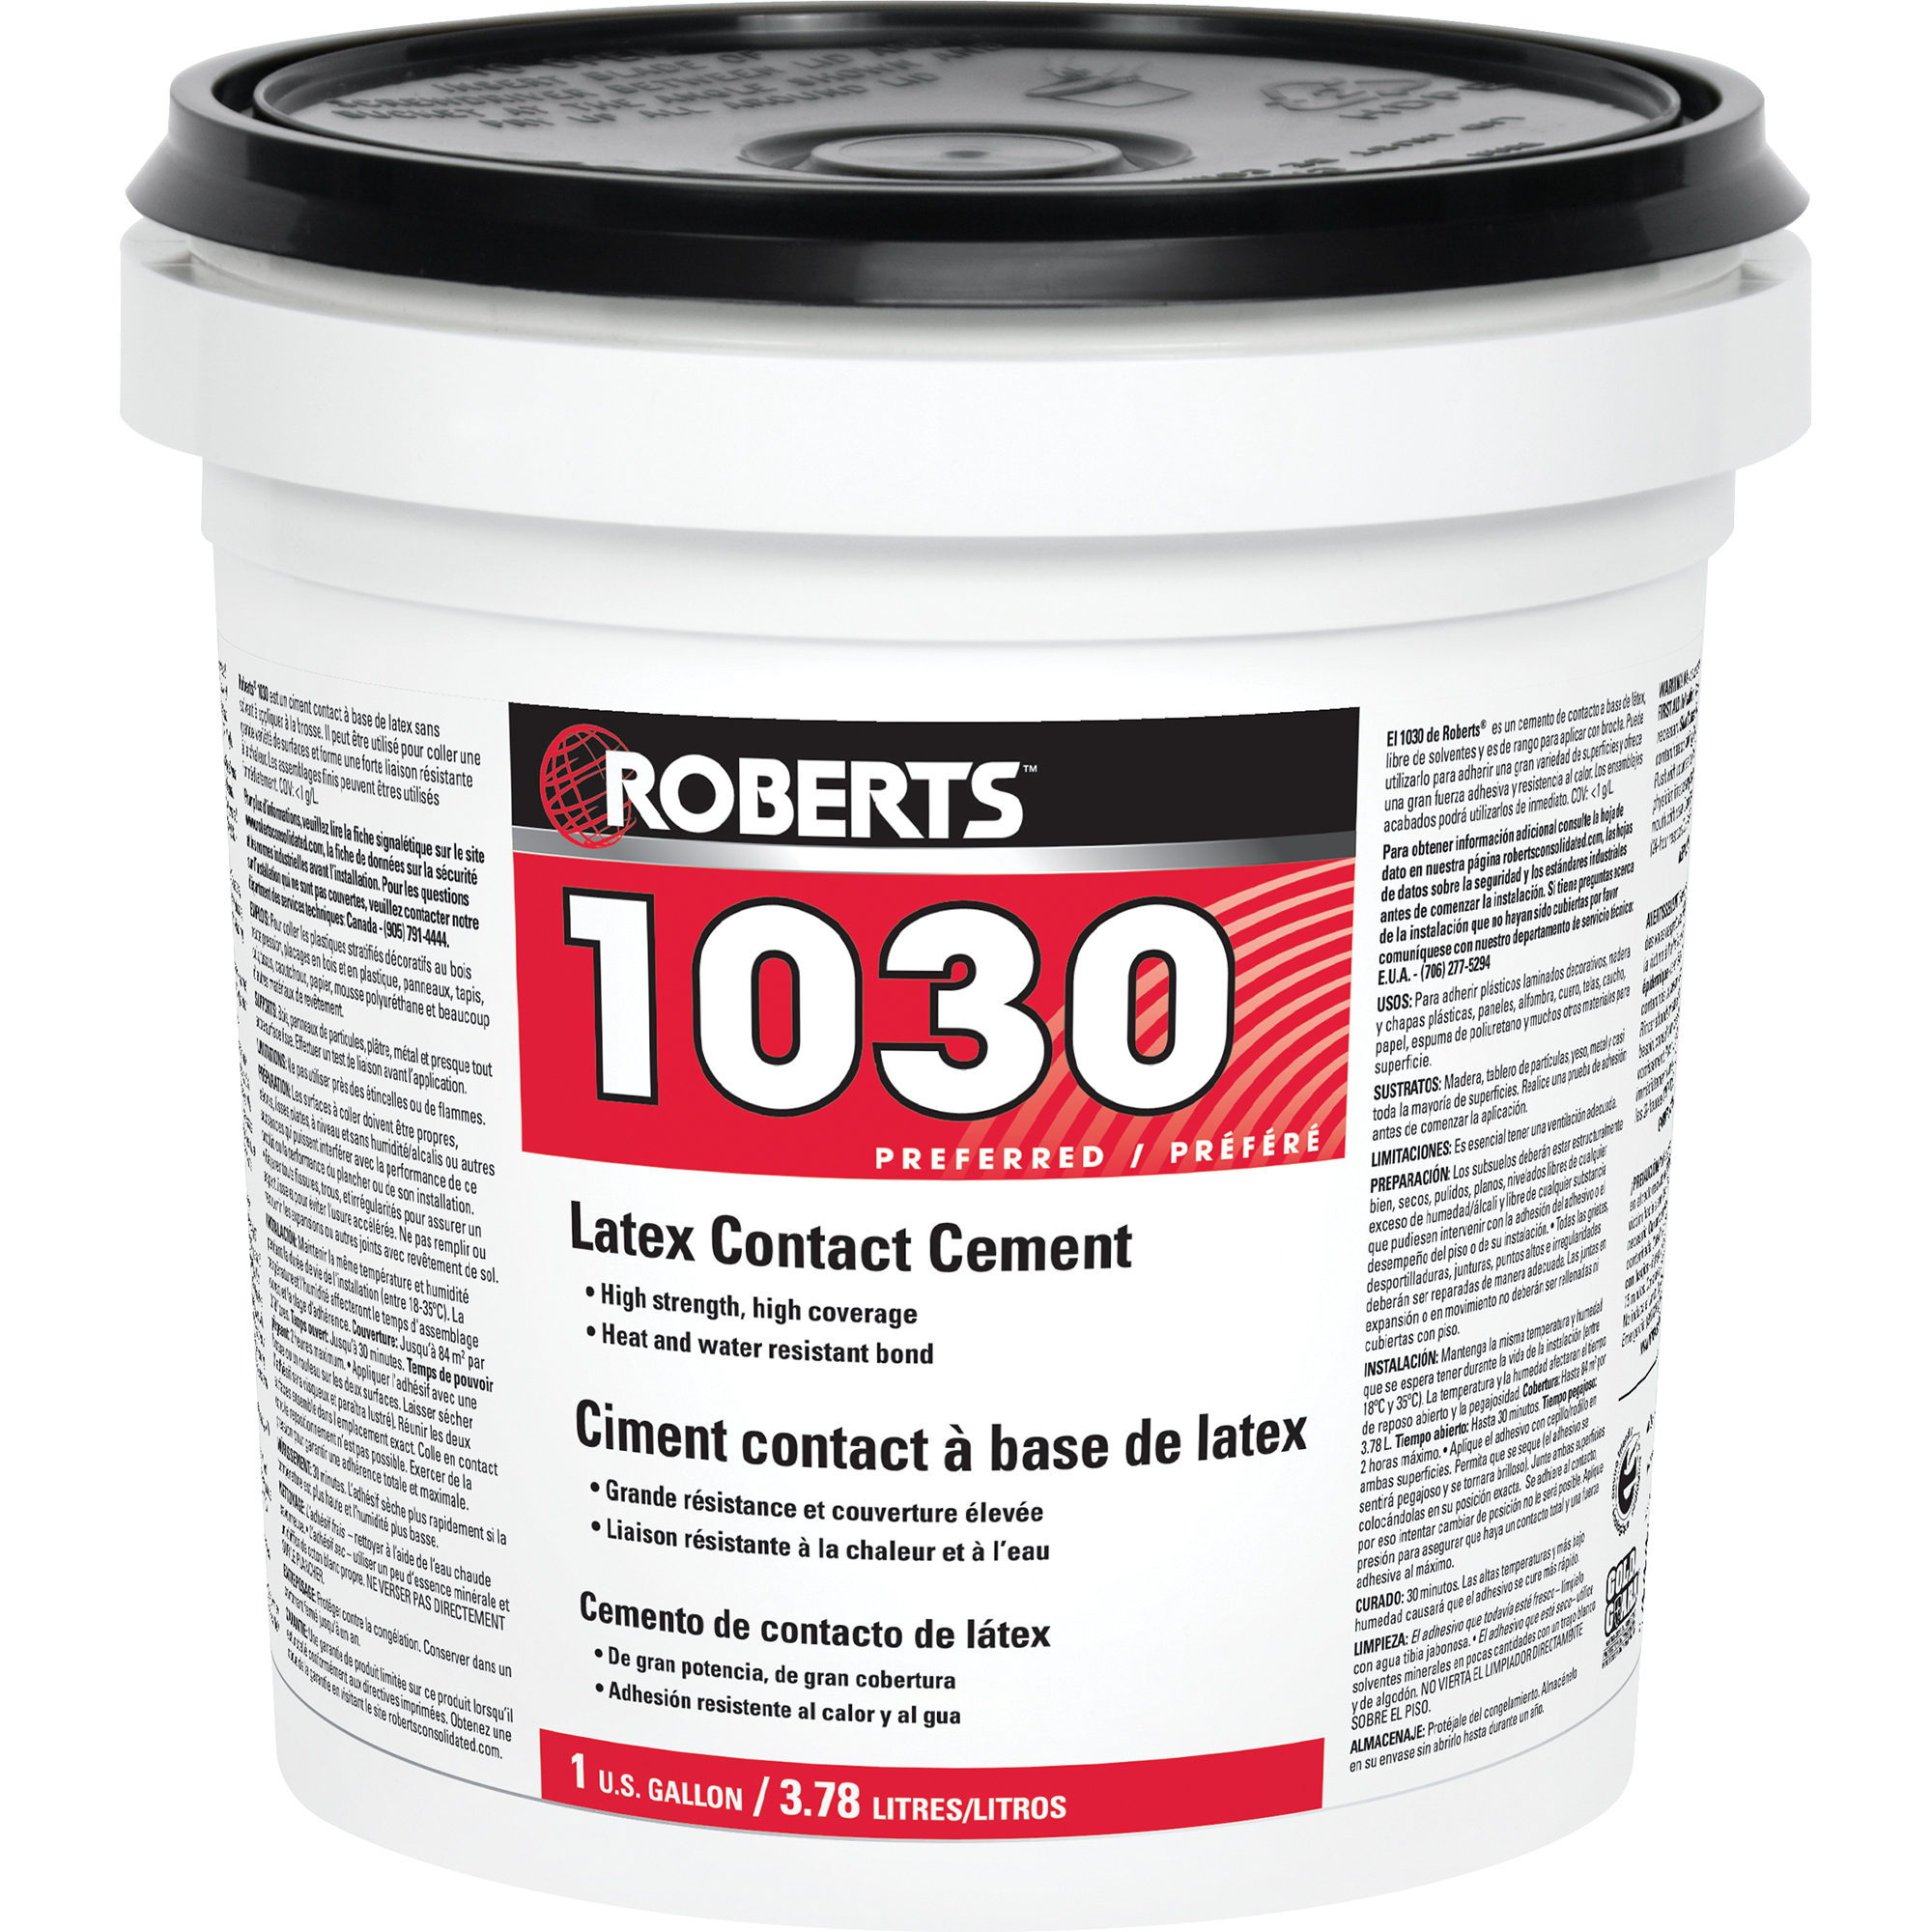 Latex Contact Cement